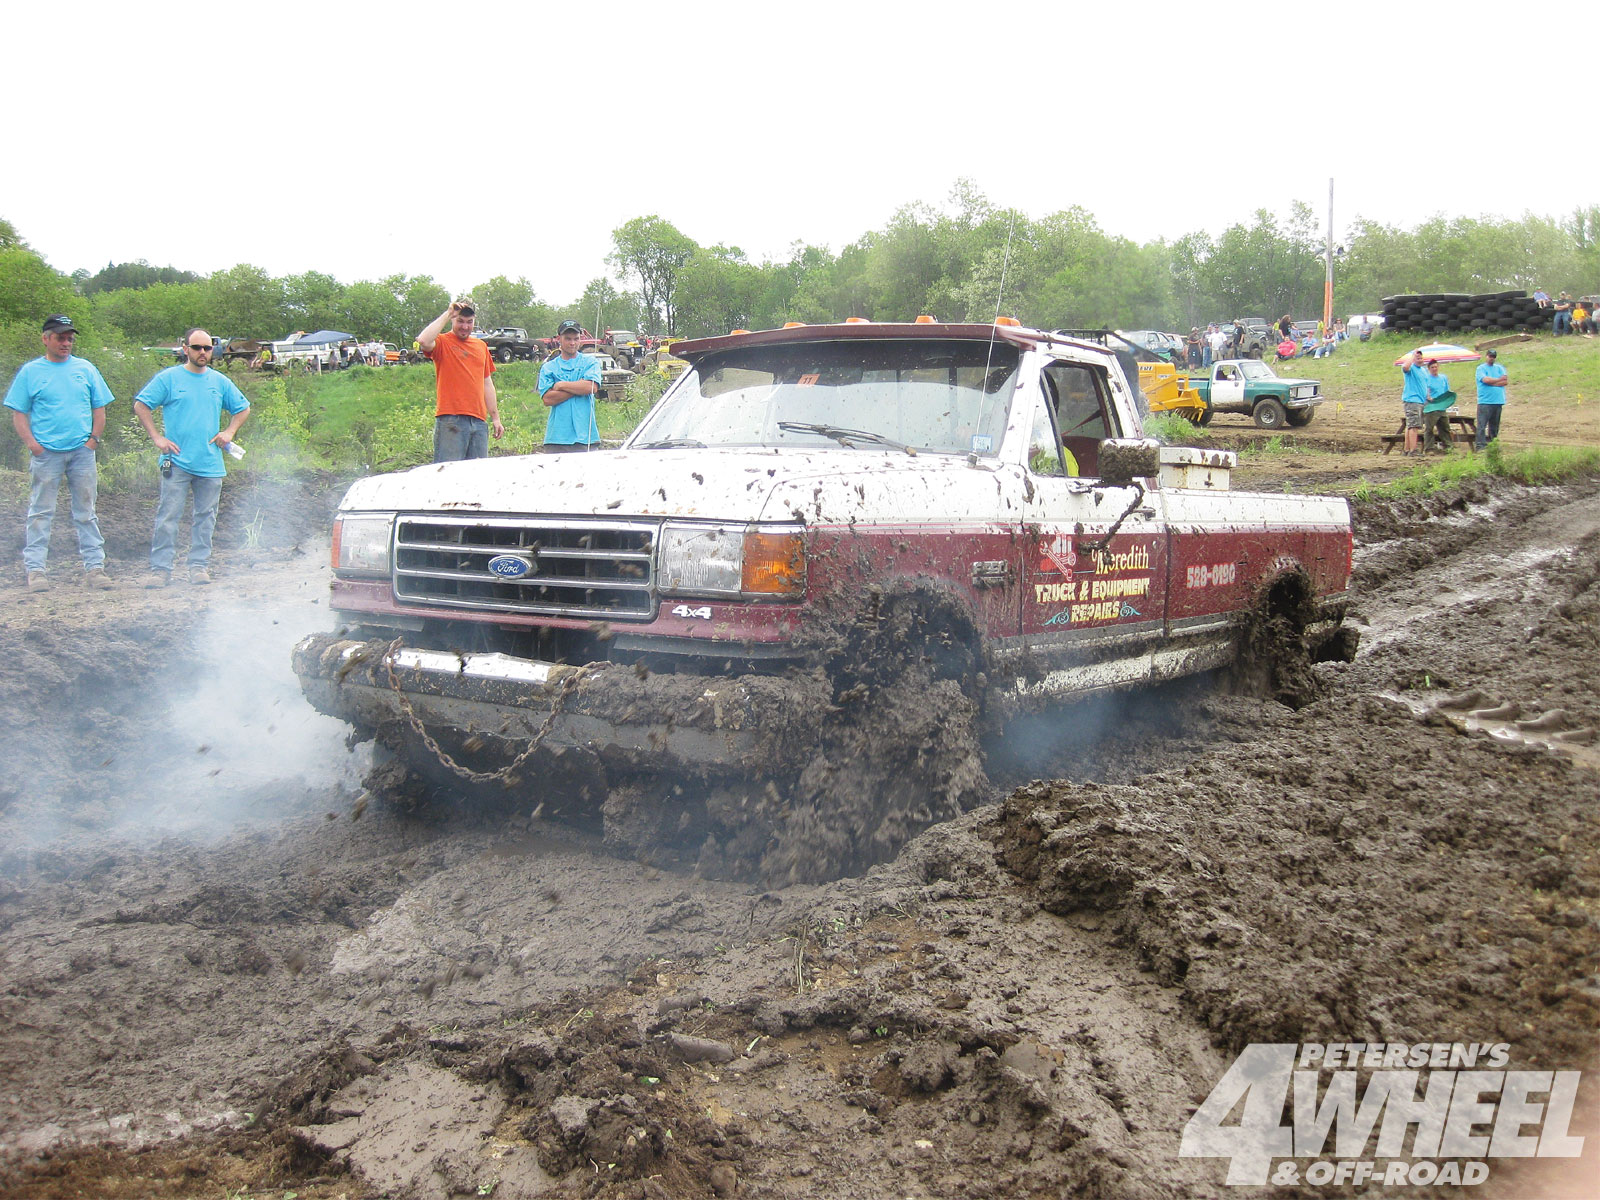 131 1103 06 o+131 1103 backyard mud boggin+1990 ford f350